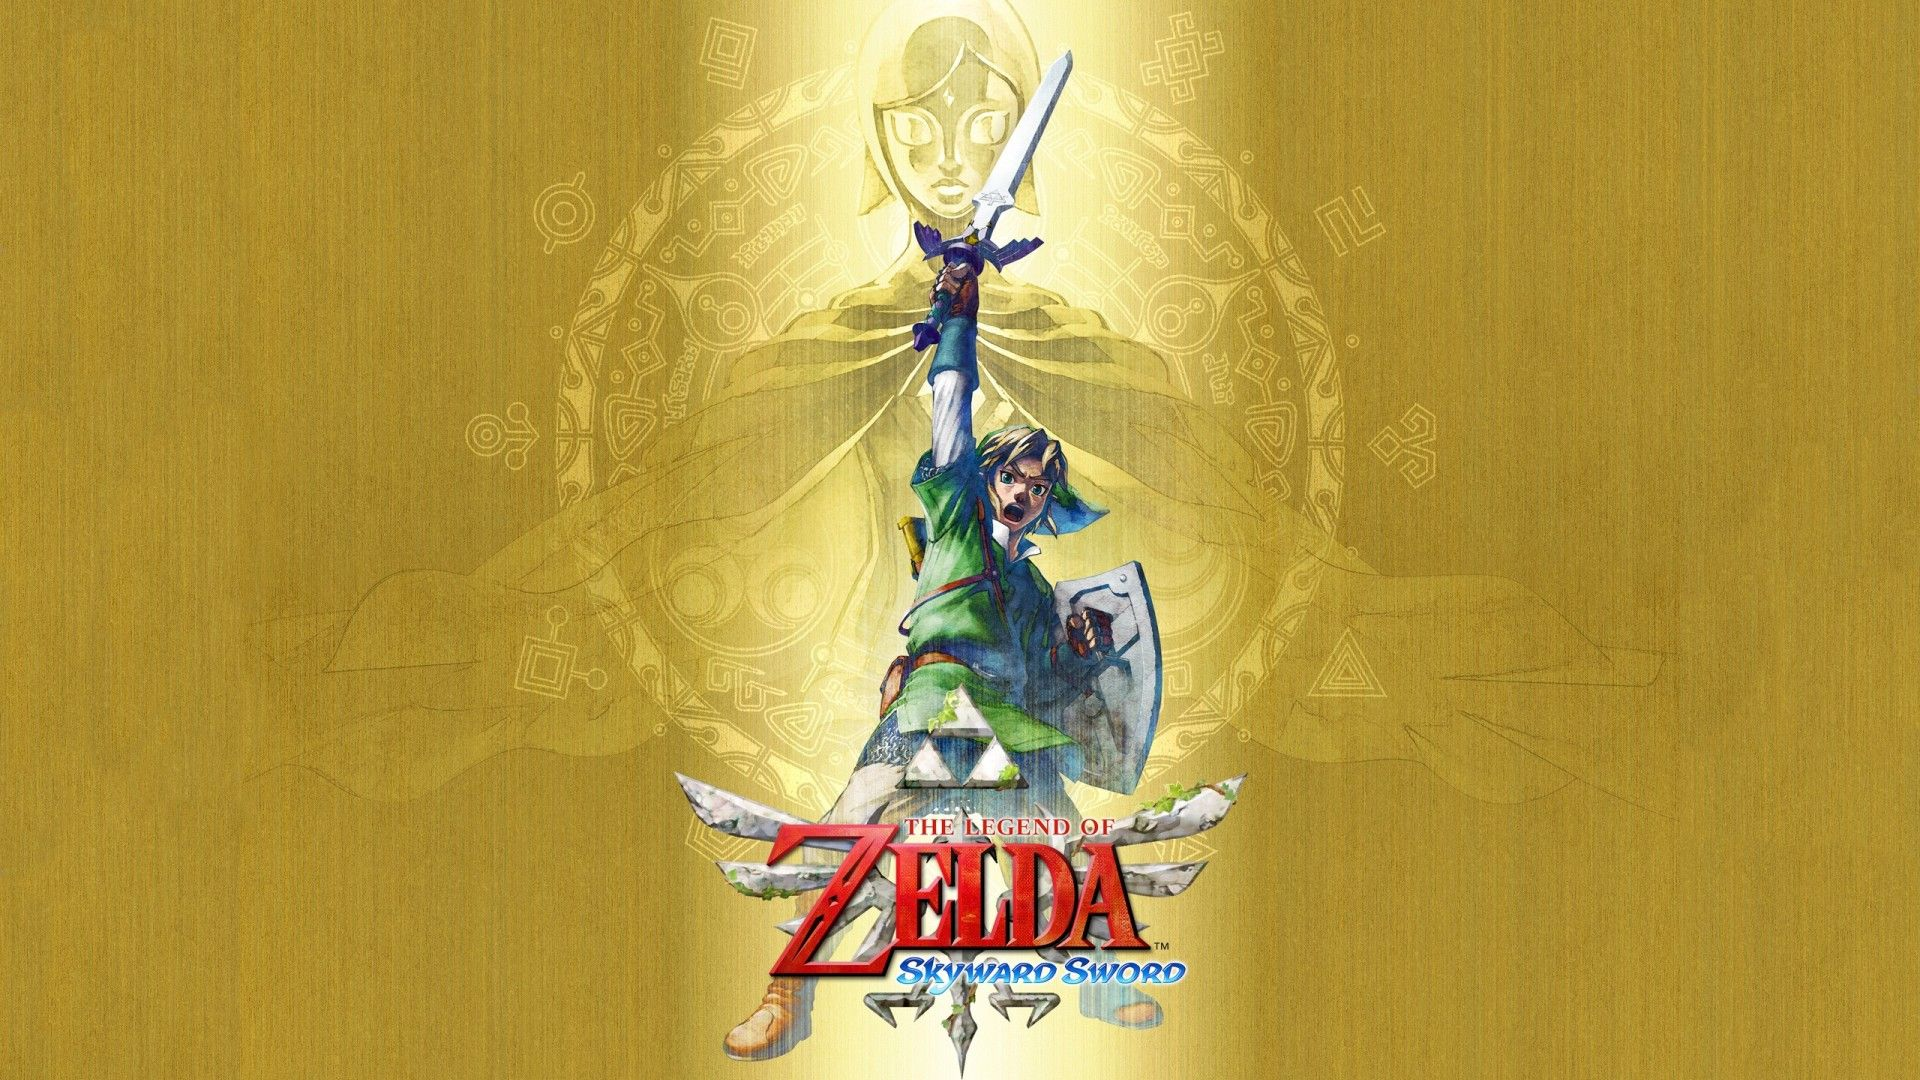 History of The Legend of Zelda